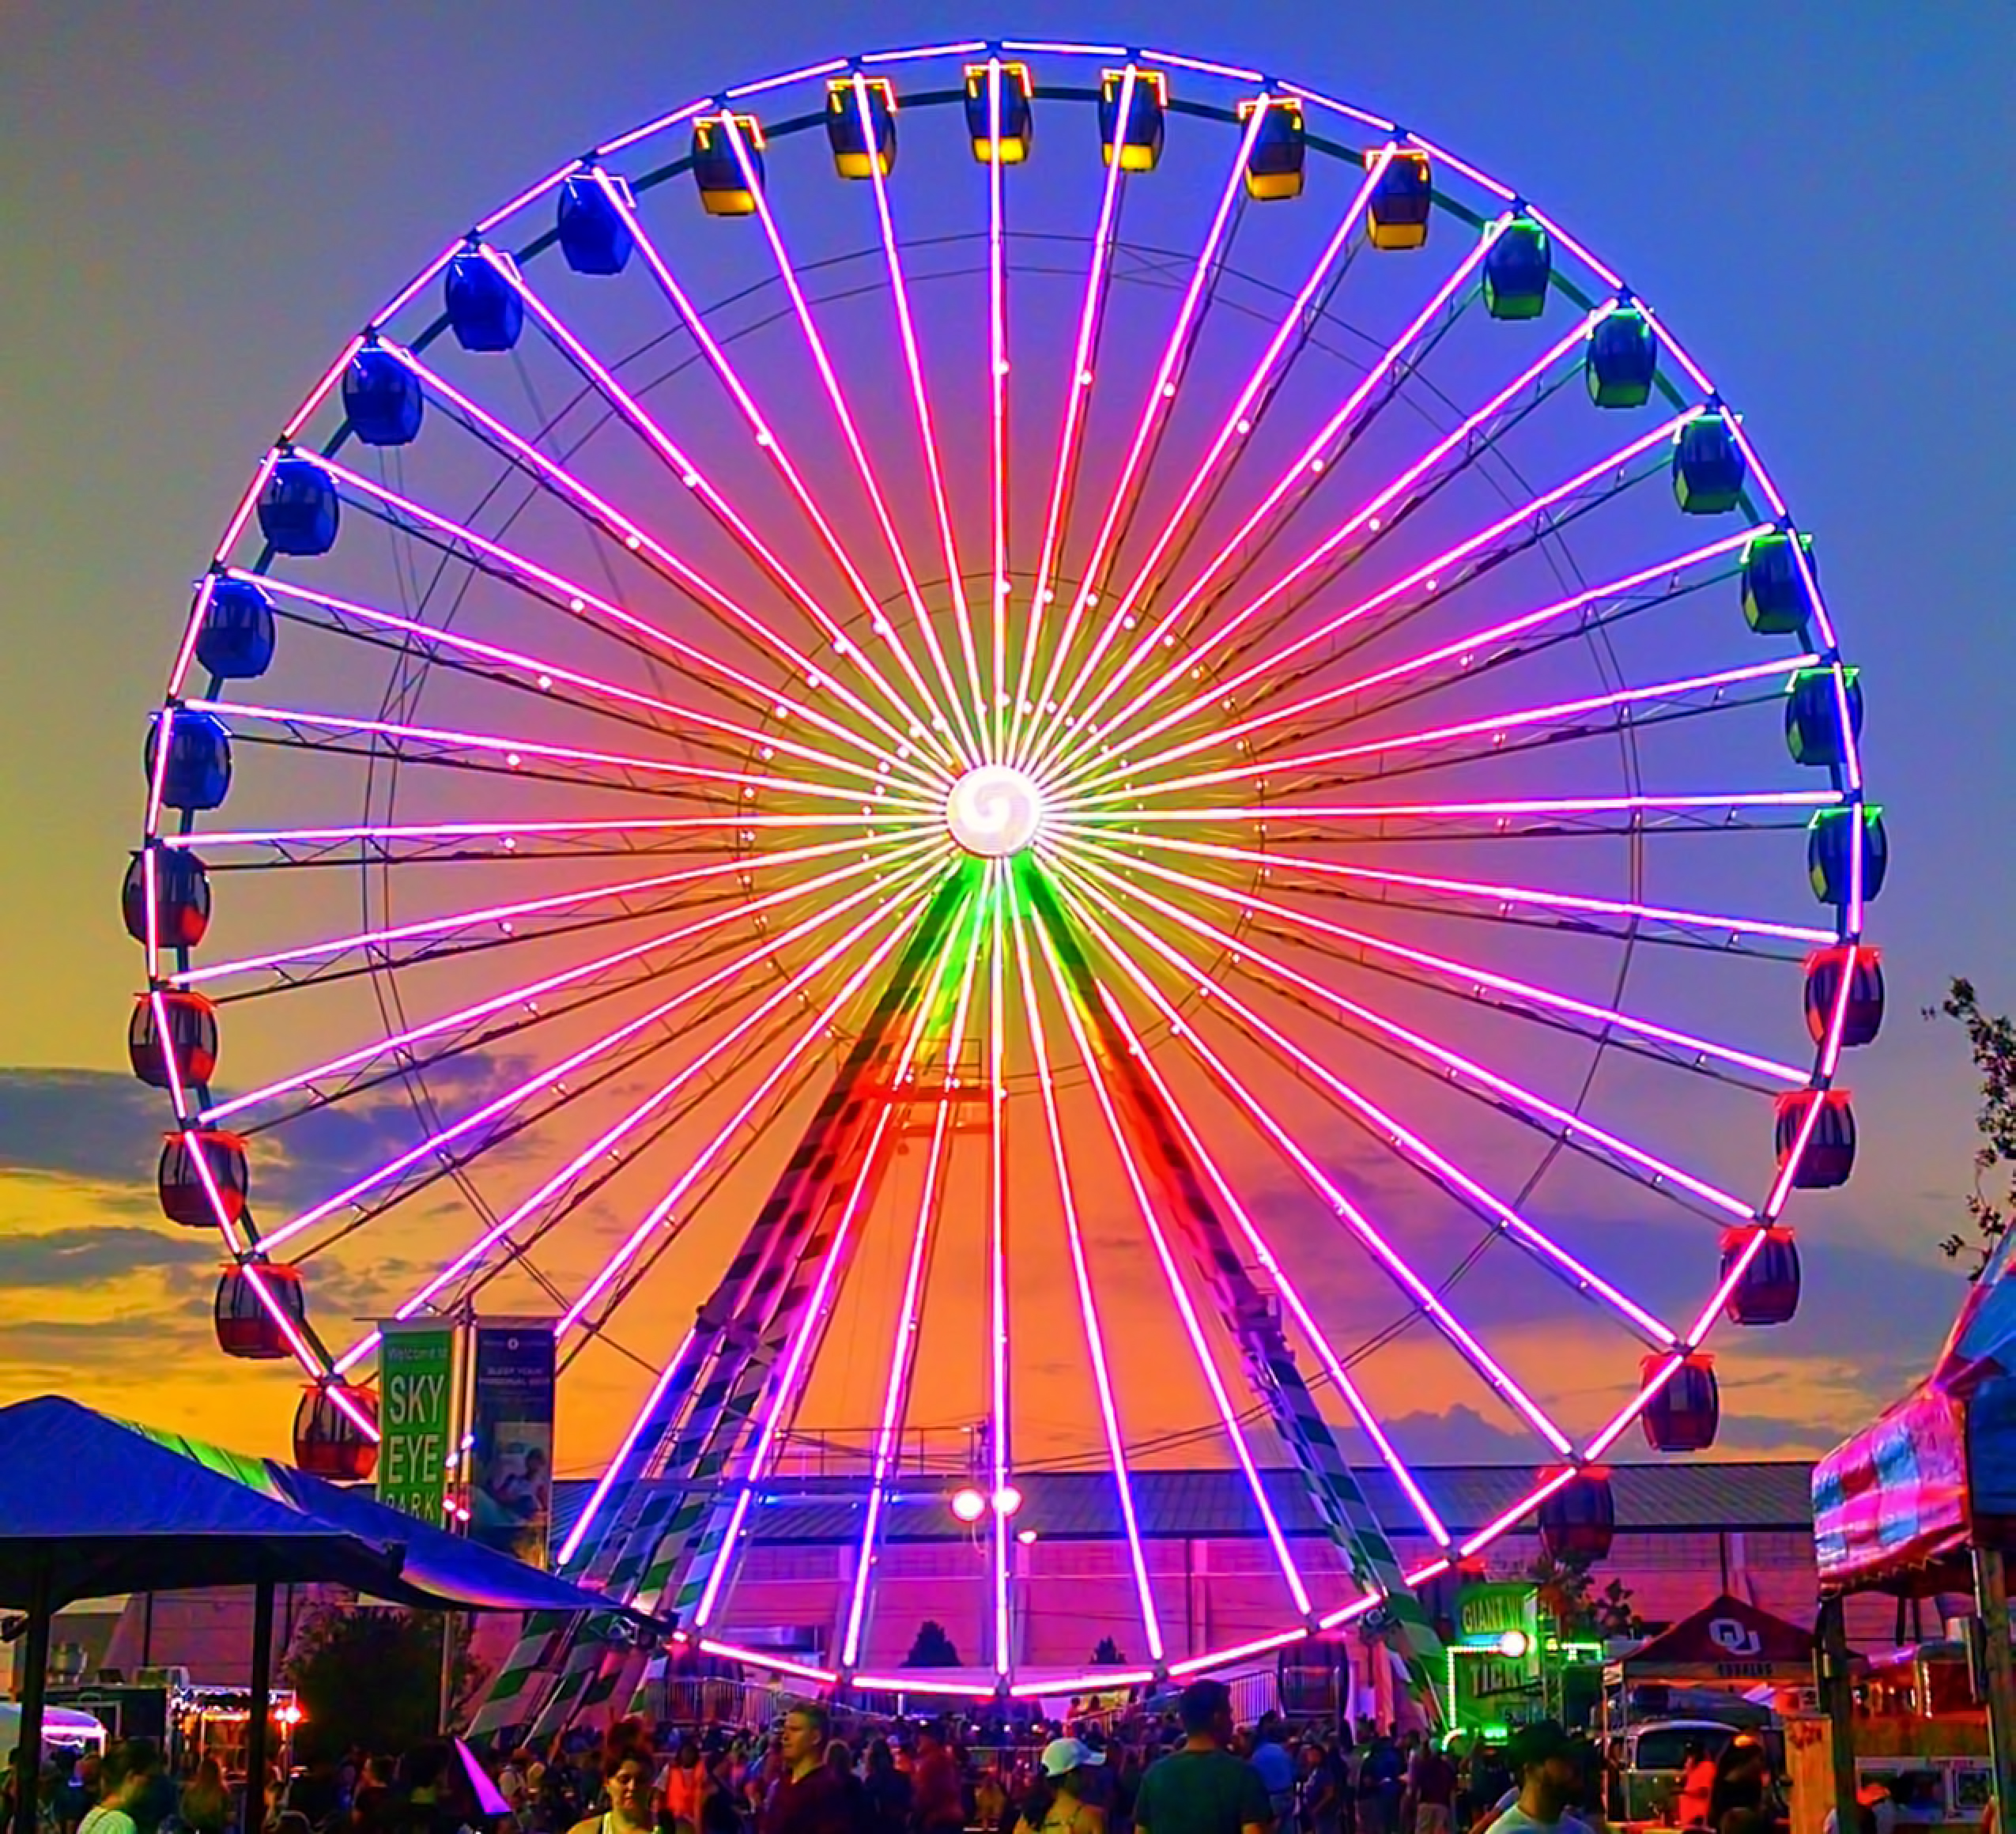 North Americas Largest Traveling Ferris Wheel Coming To South